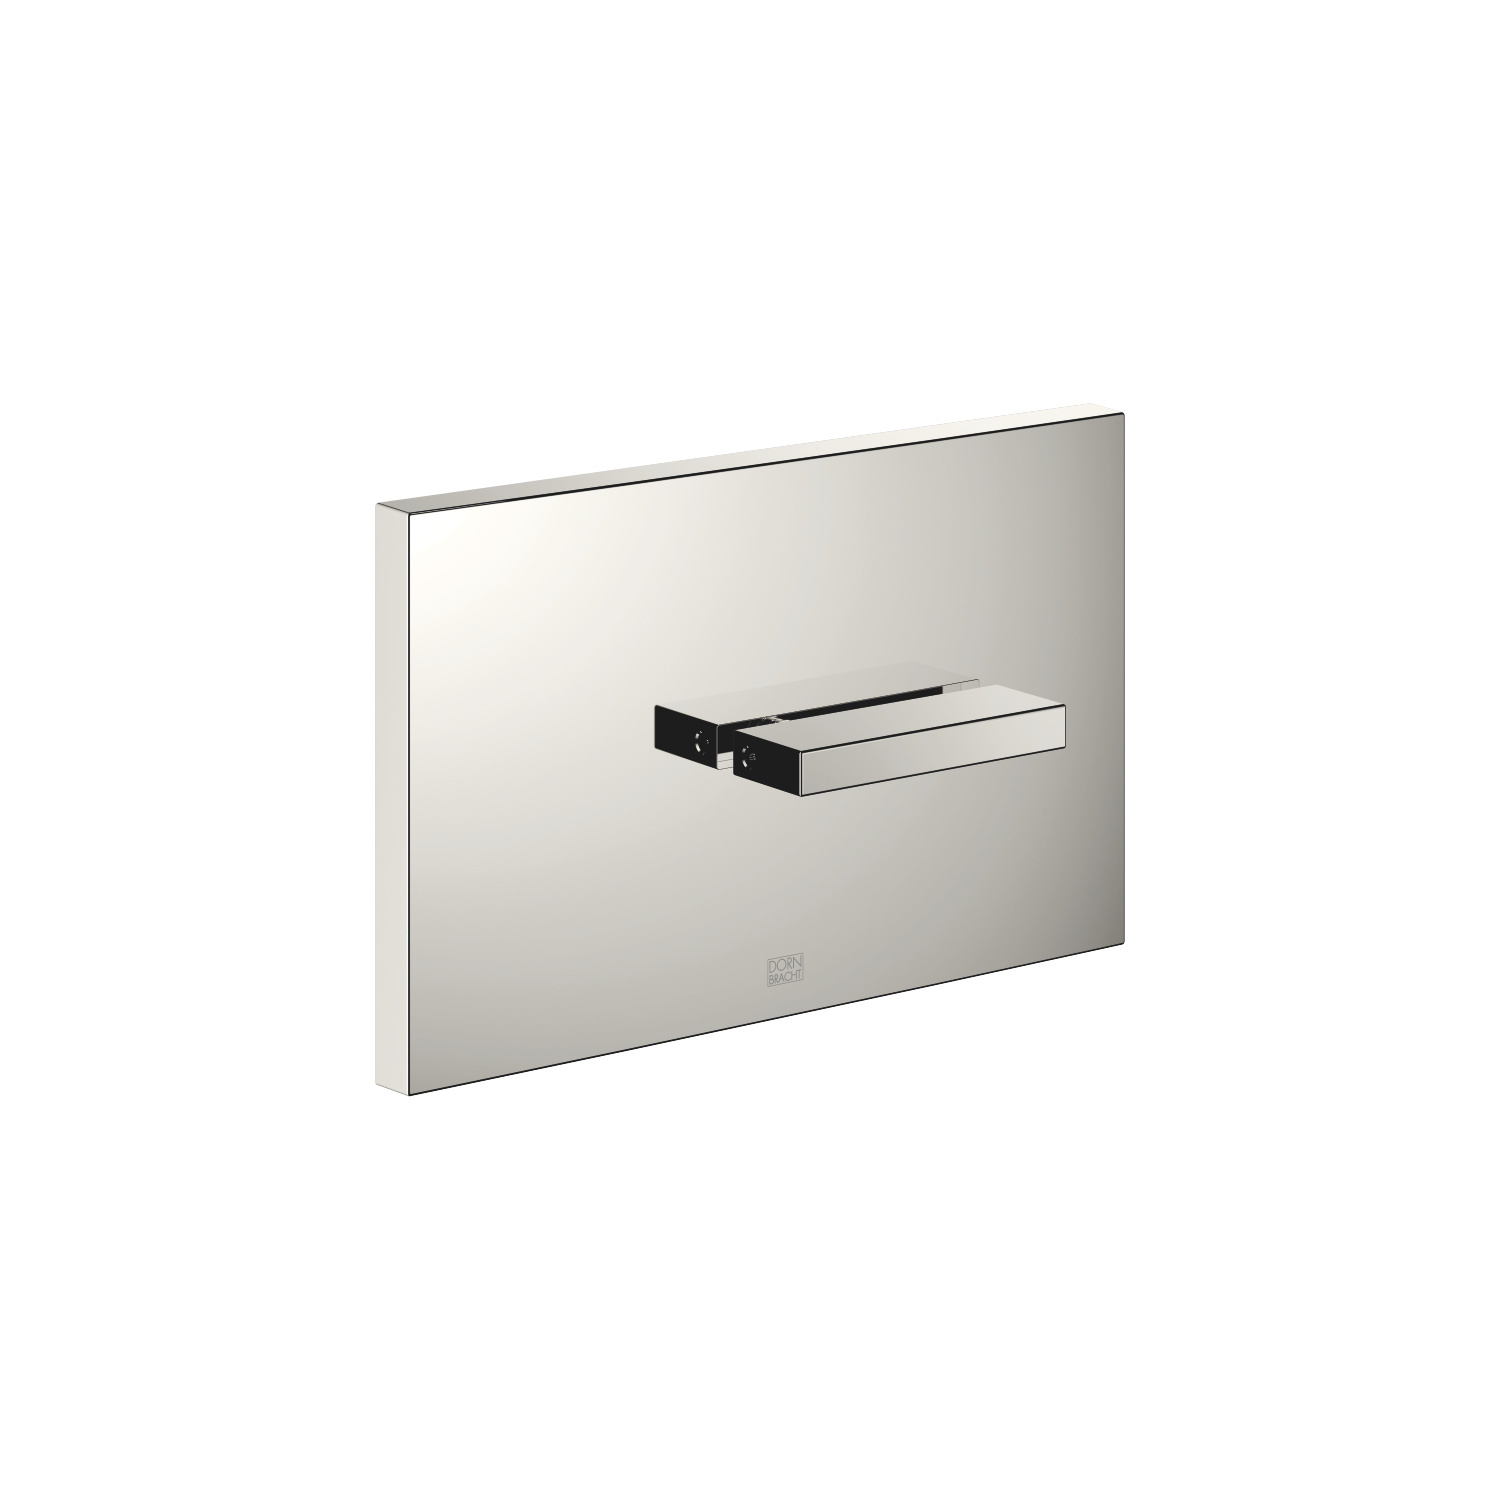 Cover plate for the concealed WC cistern made by TeCe - platinum - 12 660 979-08